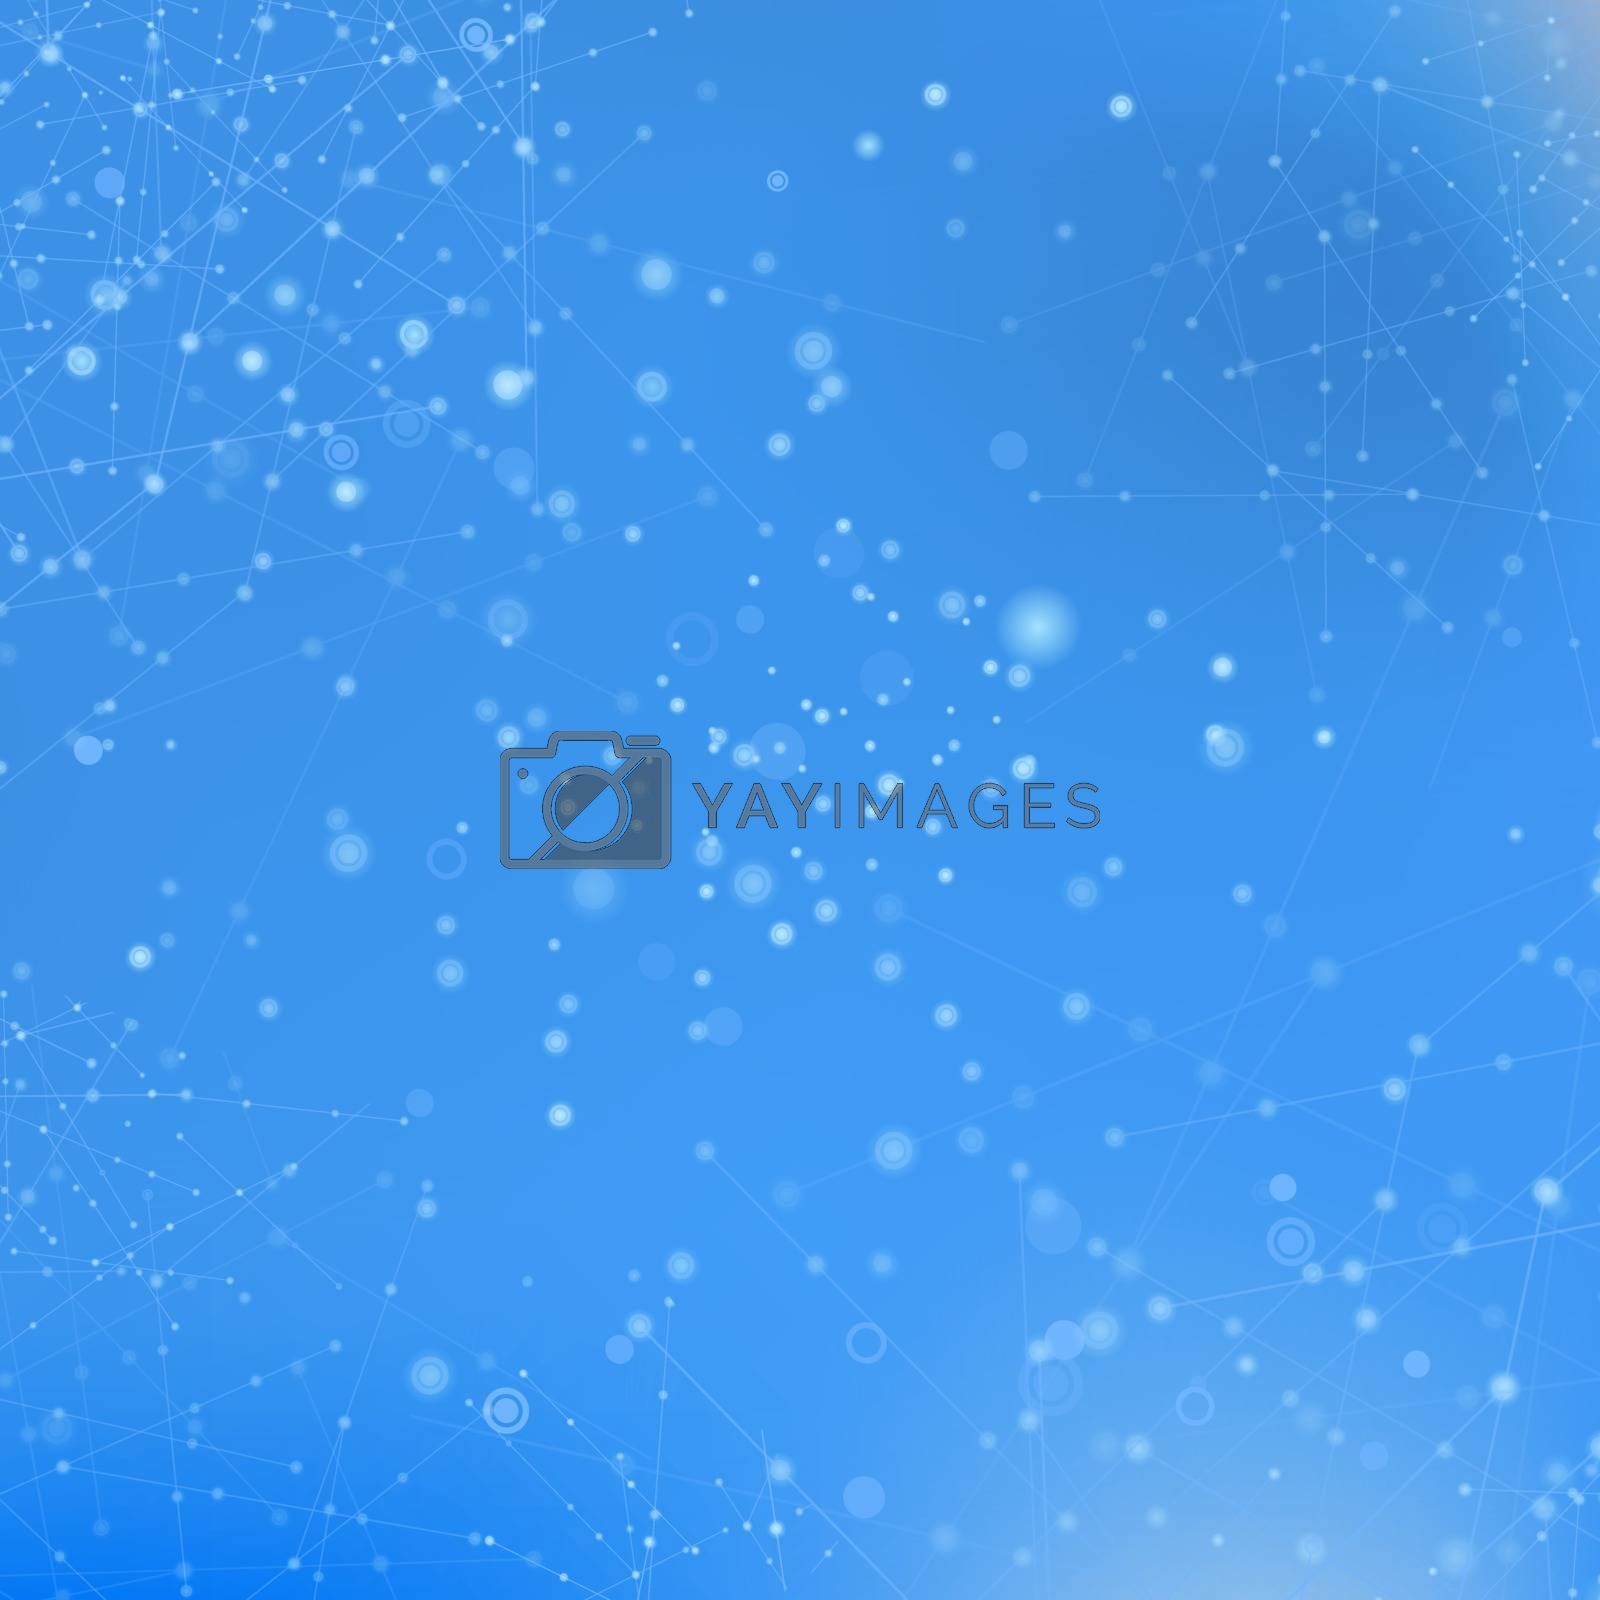 Blue Technology Background with Particle, Molecule Structure. Genetic and Chemical Compounds. Communication Concept. Space and Constellations.